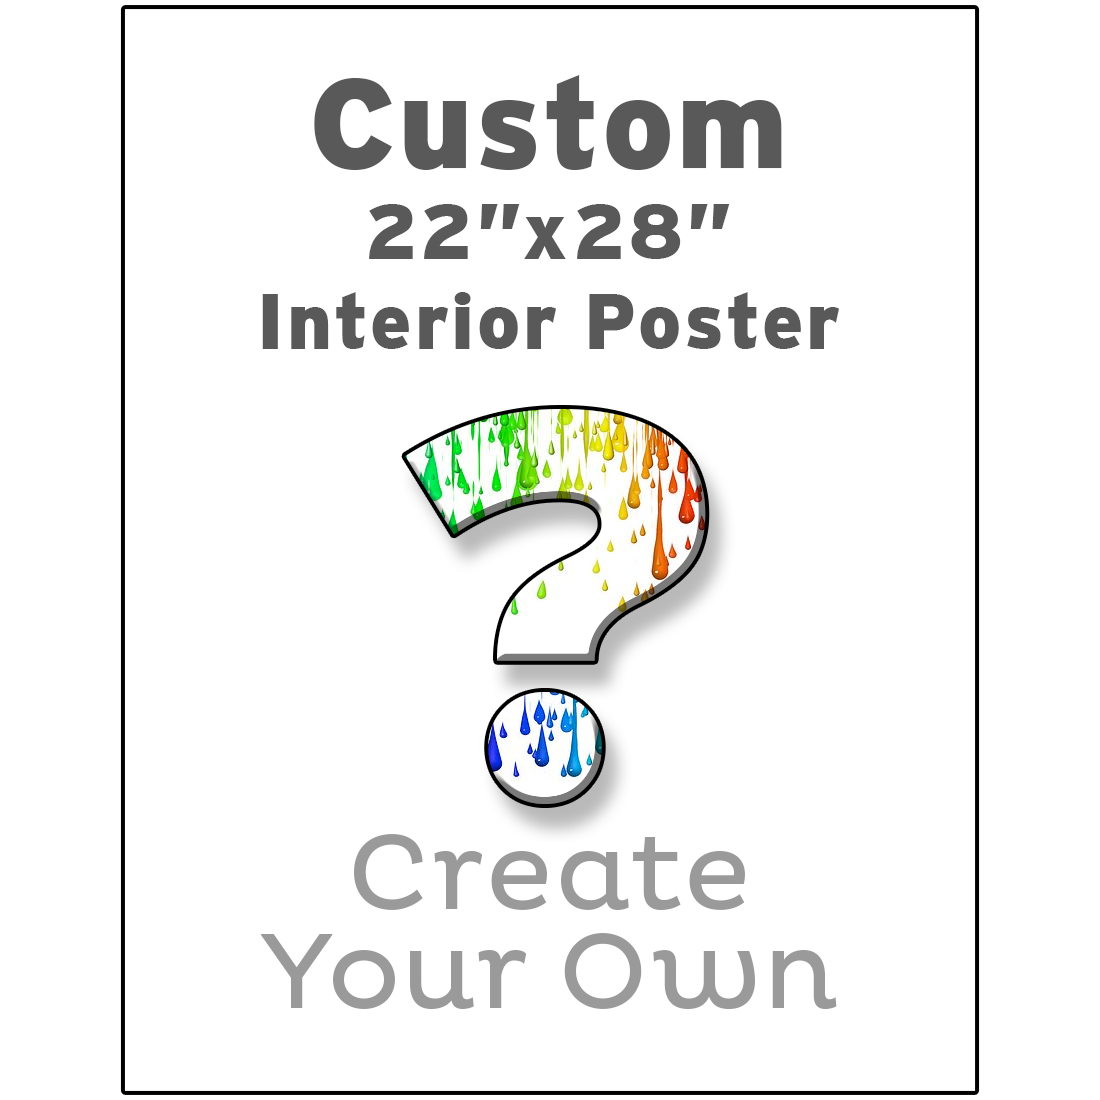 Create your own custom interior poster for Design your own interior